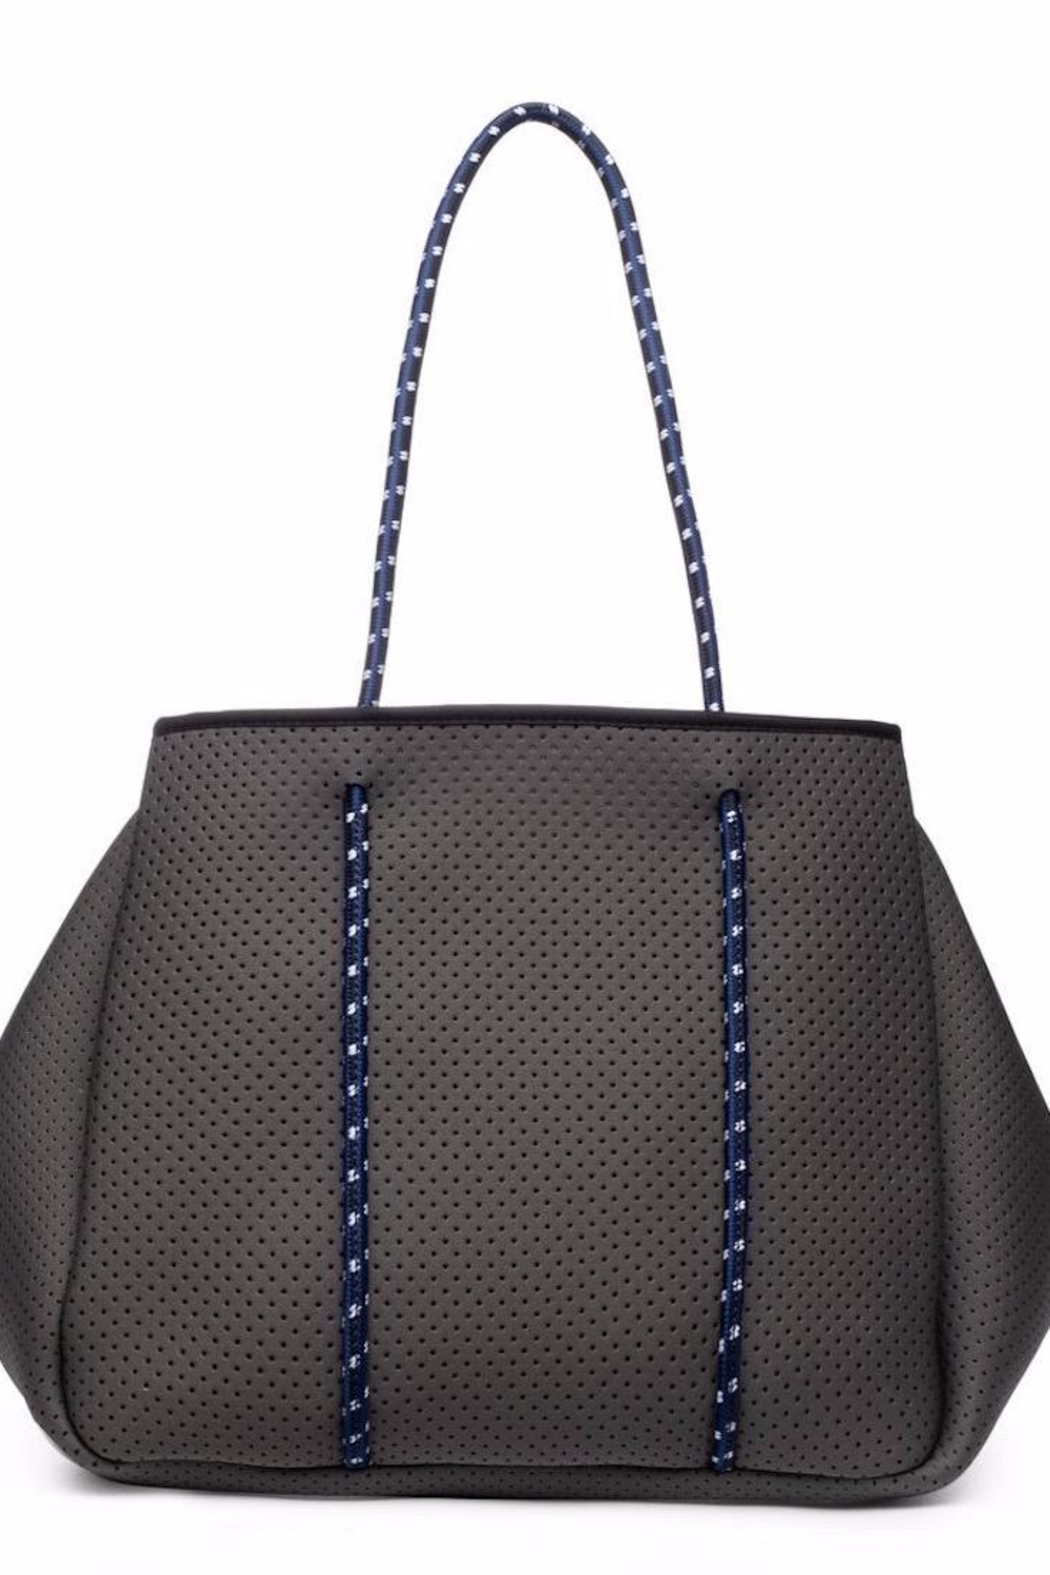 Annabel Ingall Neoprene Tote - Front Cropped Image